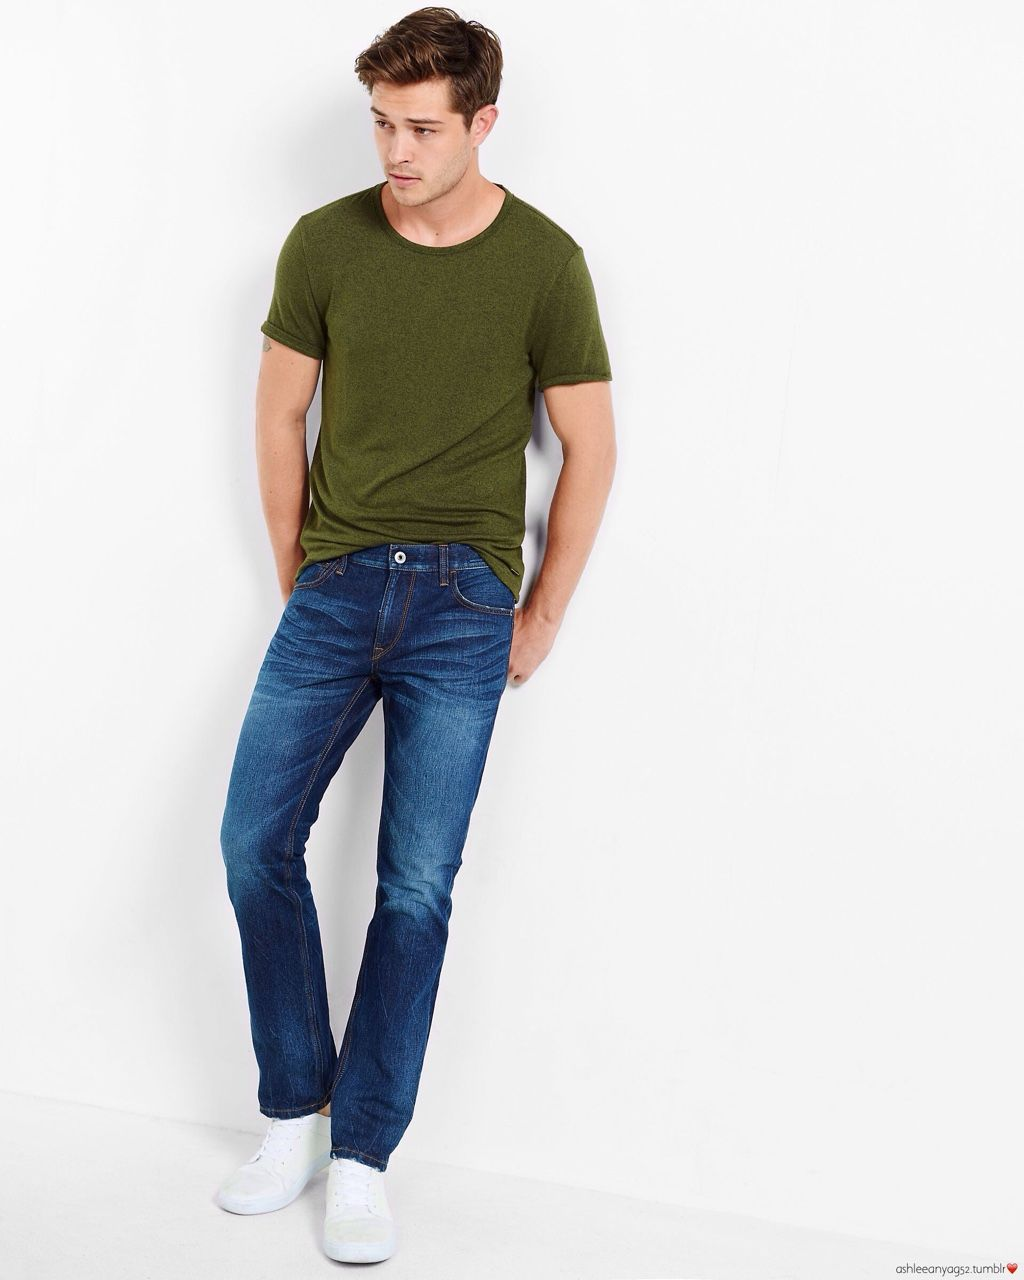 Francisco Lachowski For Express Men Mens Stretch Jeans Mens Jeans Fit Stretch Skinny Jeans